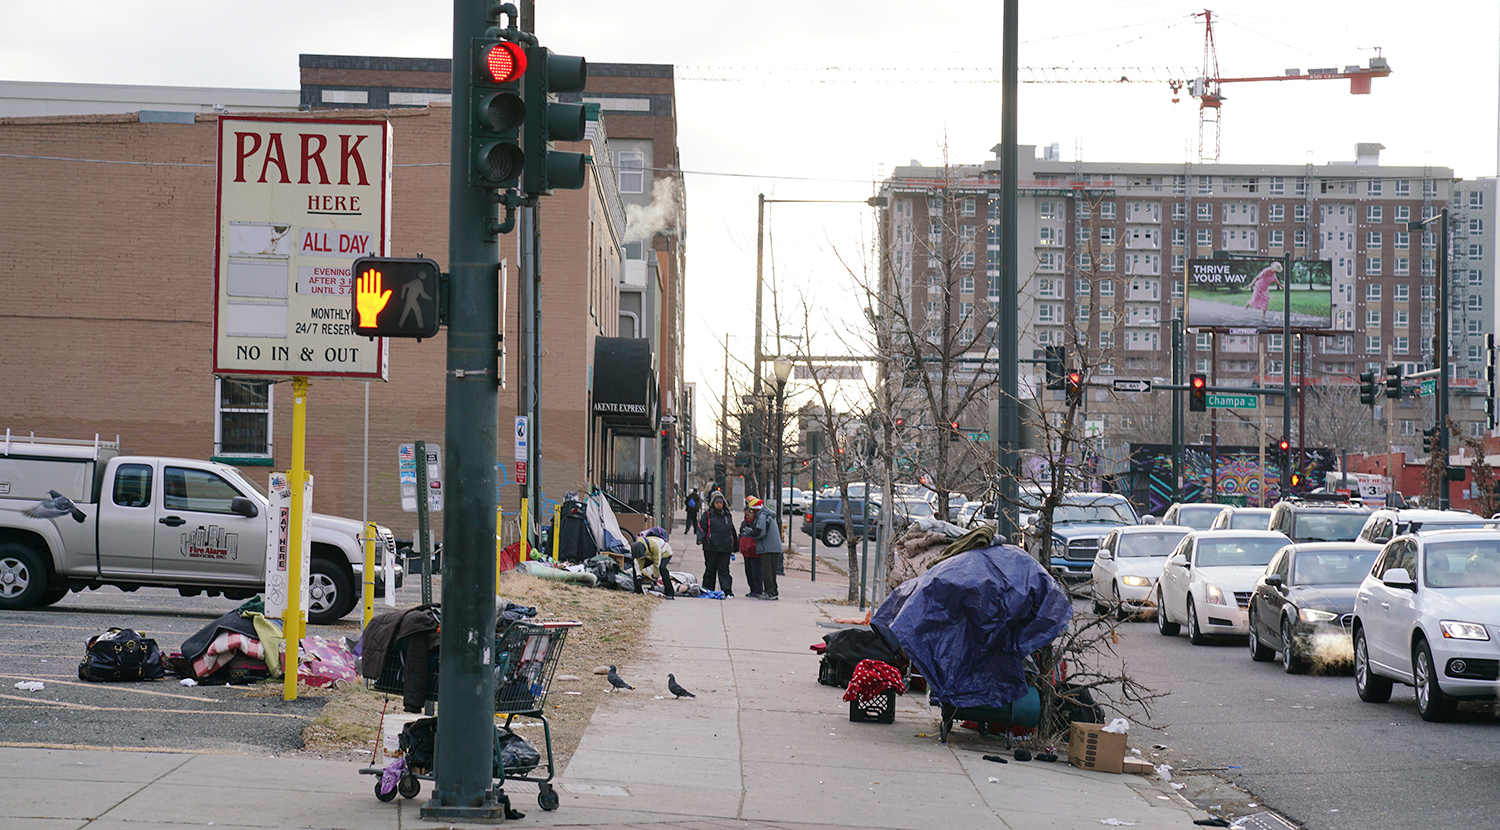 People experiencing homelessness tend to live in certain pockets of Denver's downtown, including this section of Champa Street.